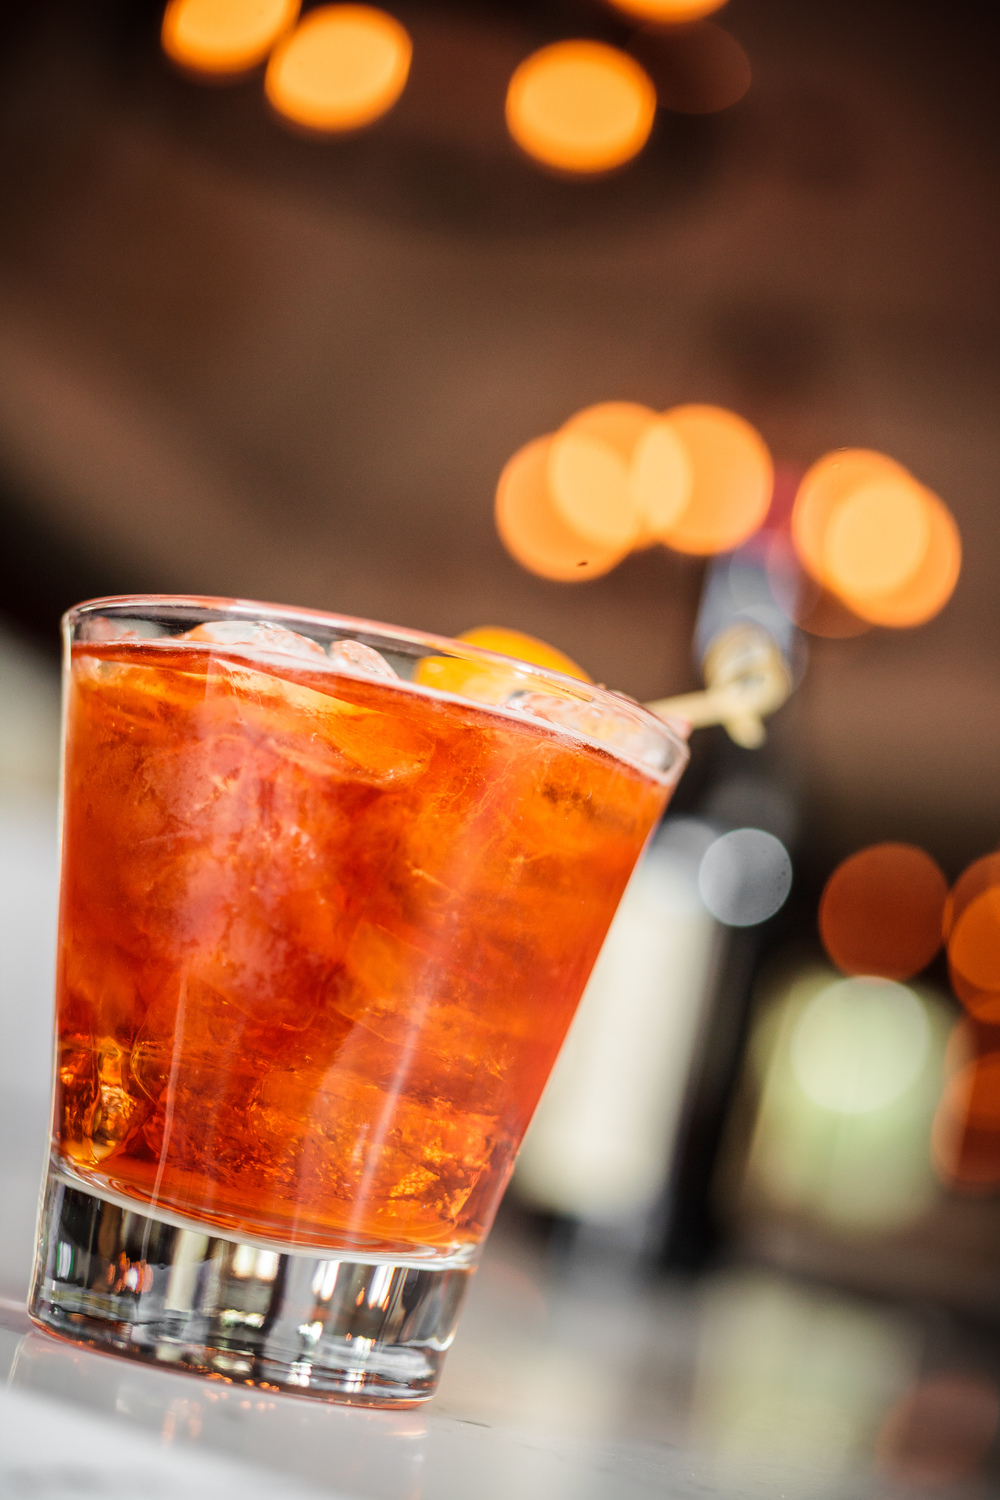 Negroni Week, presented by Imbibe Magazine and Campari